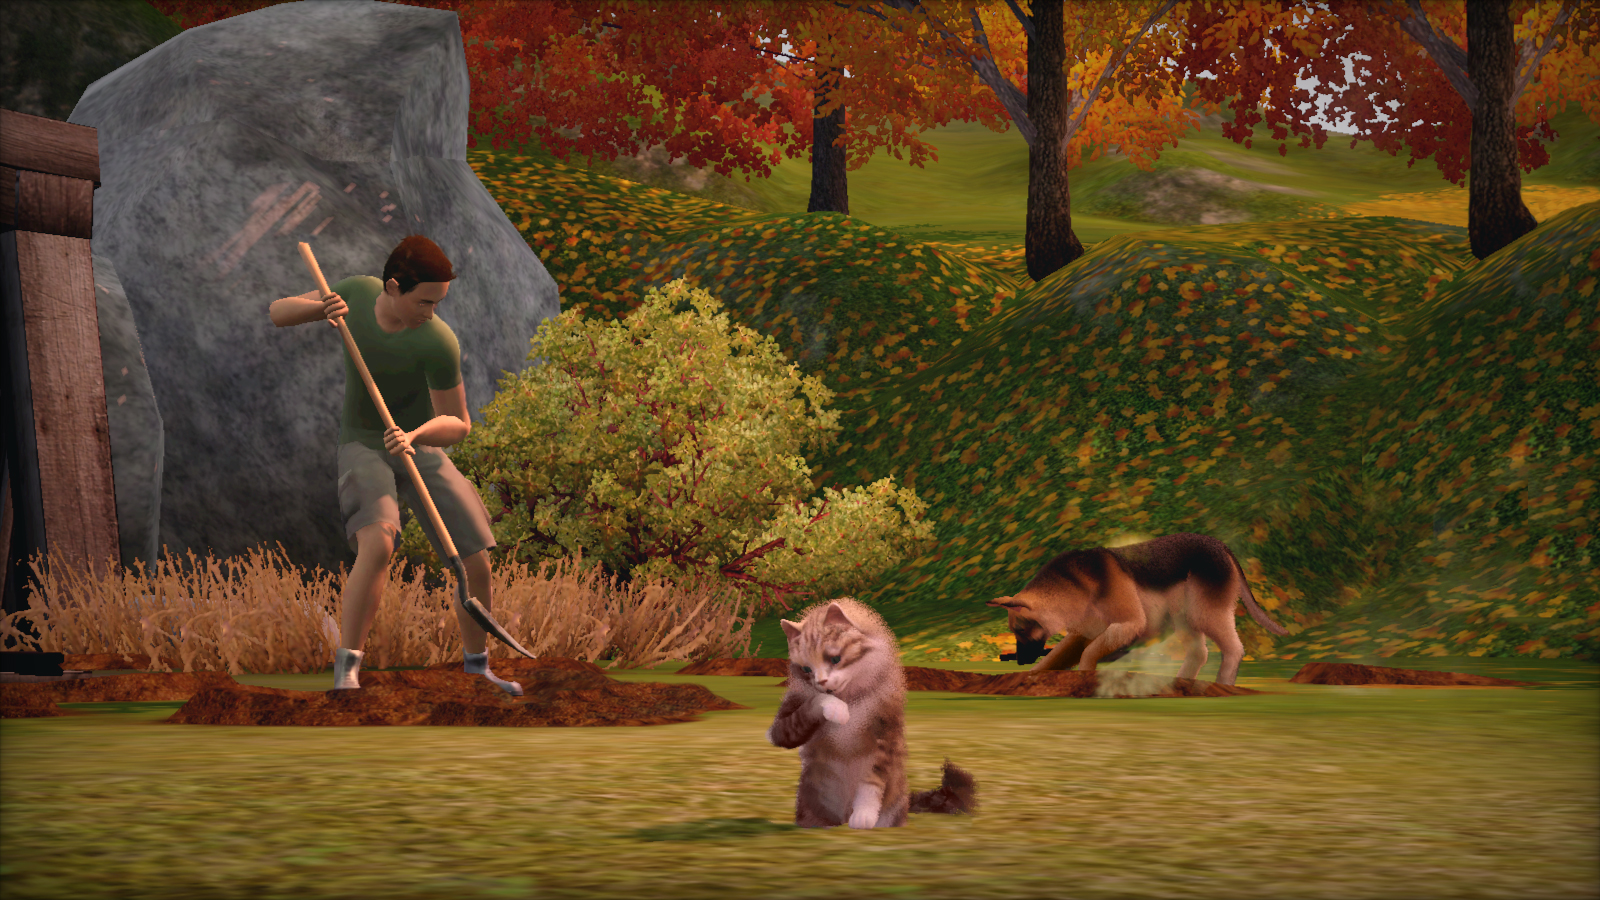 http://images.wikia.com/simswiki/pt-br/images/b/ba/The_Sims_3_Pets_09.jpg